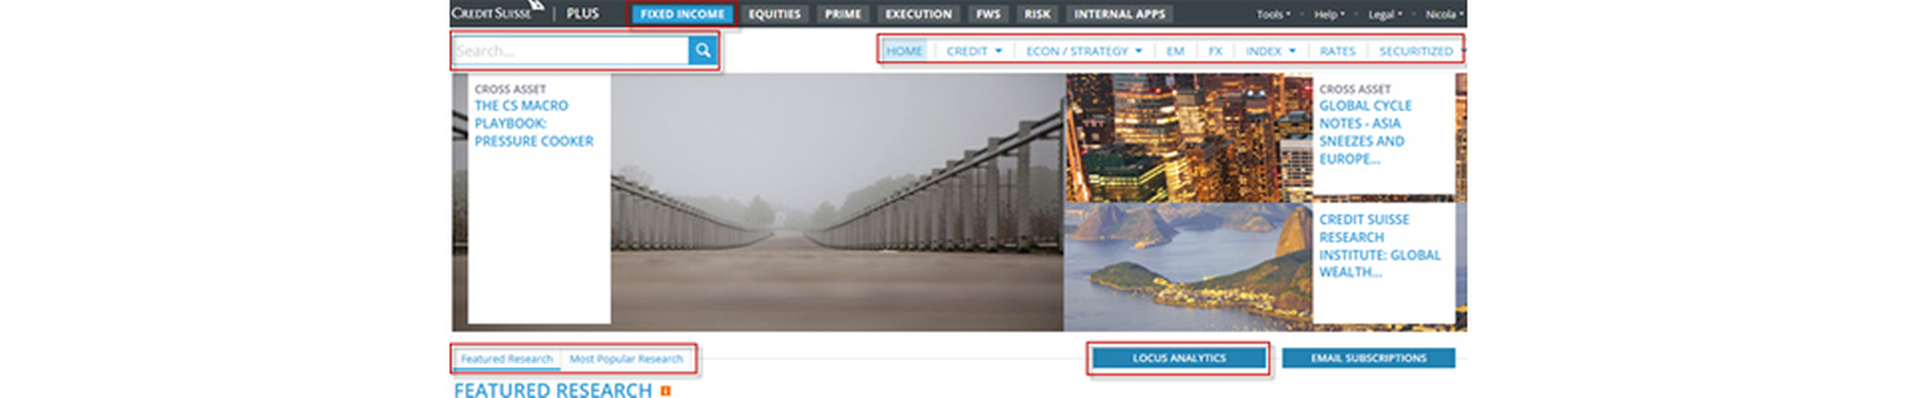 The Fixed Income page has a new layout